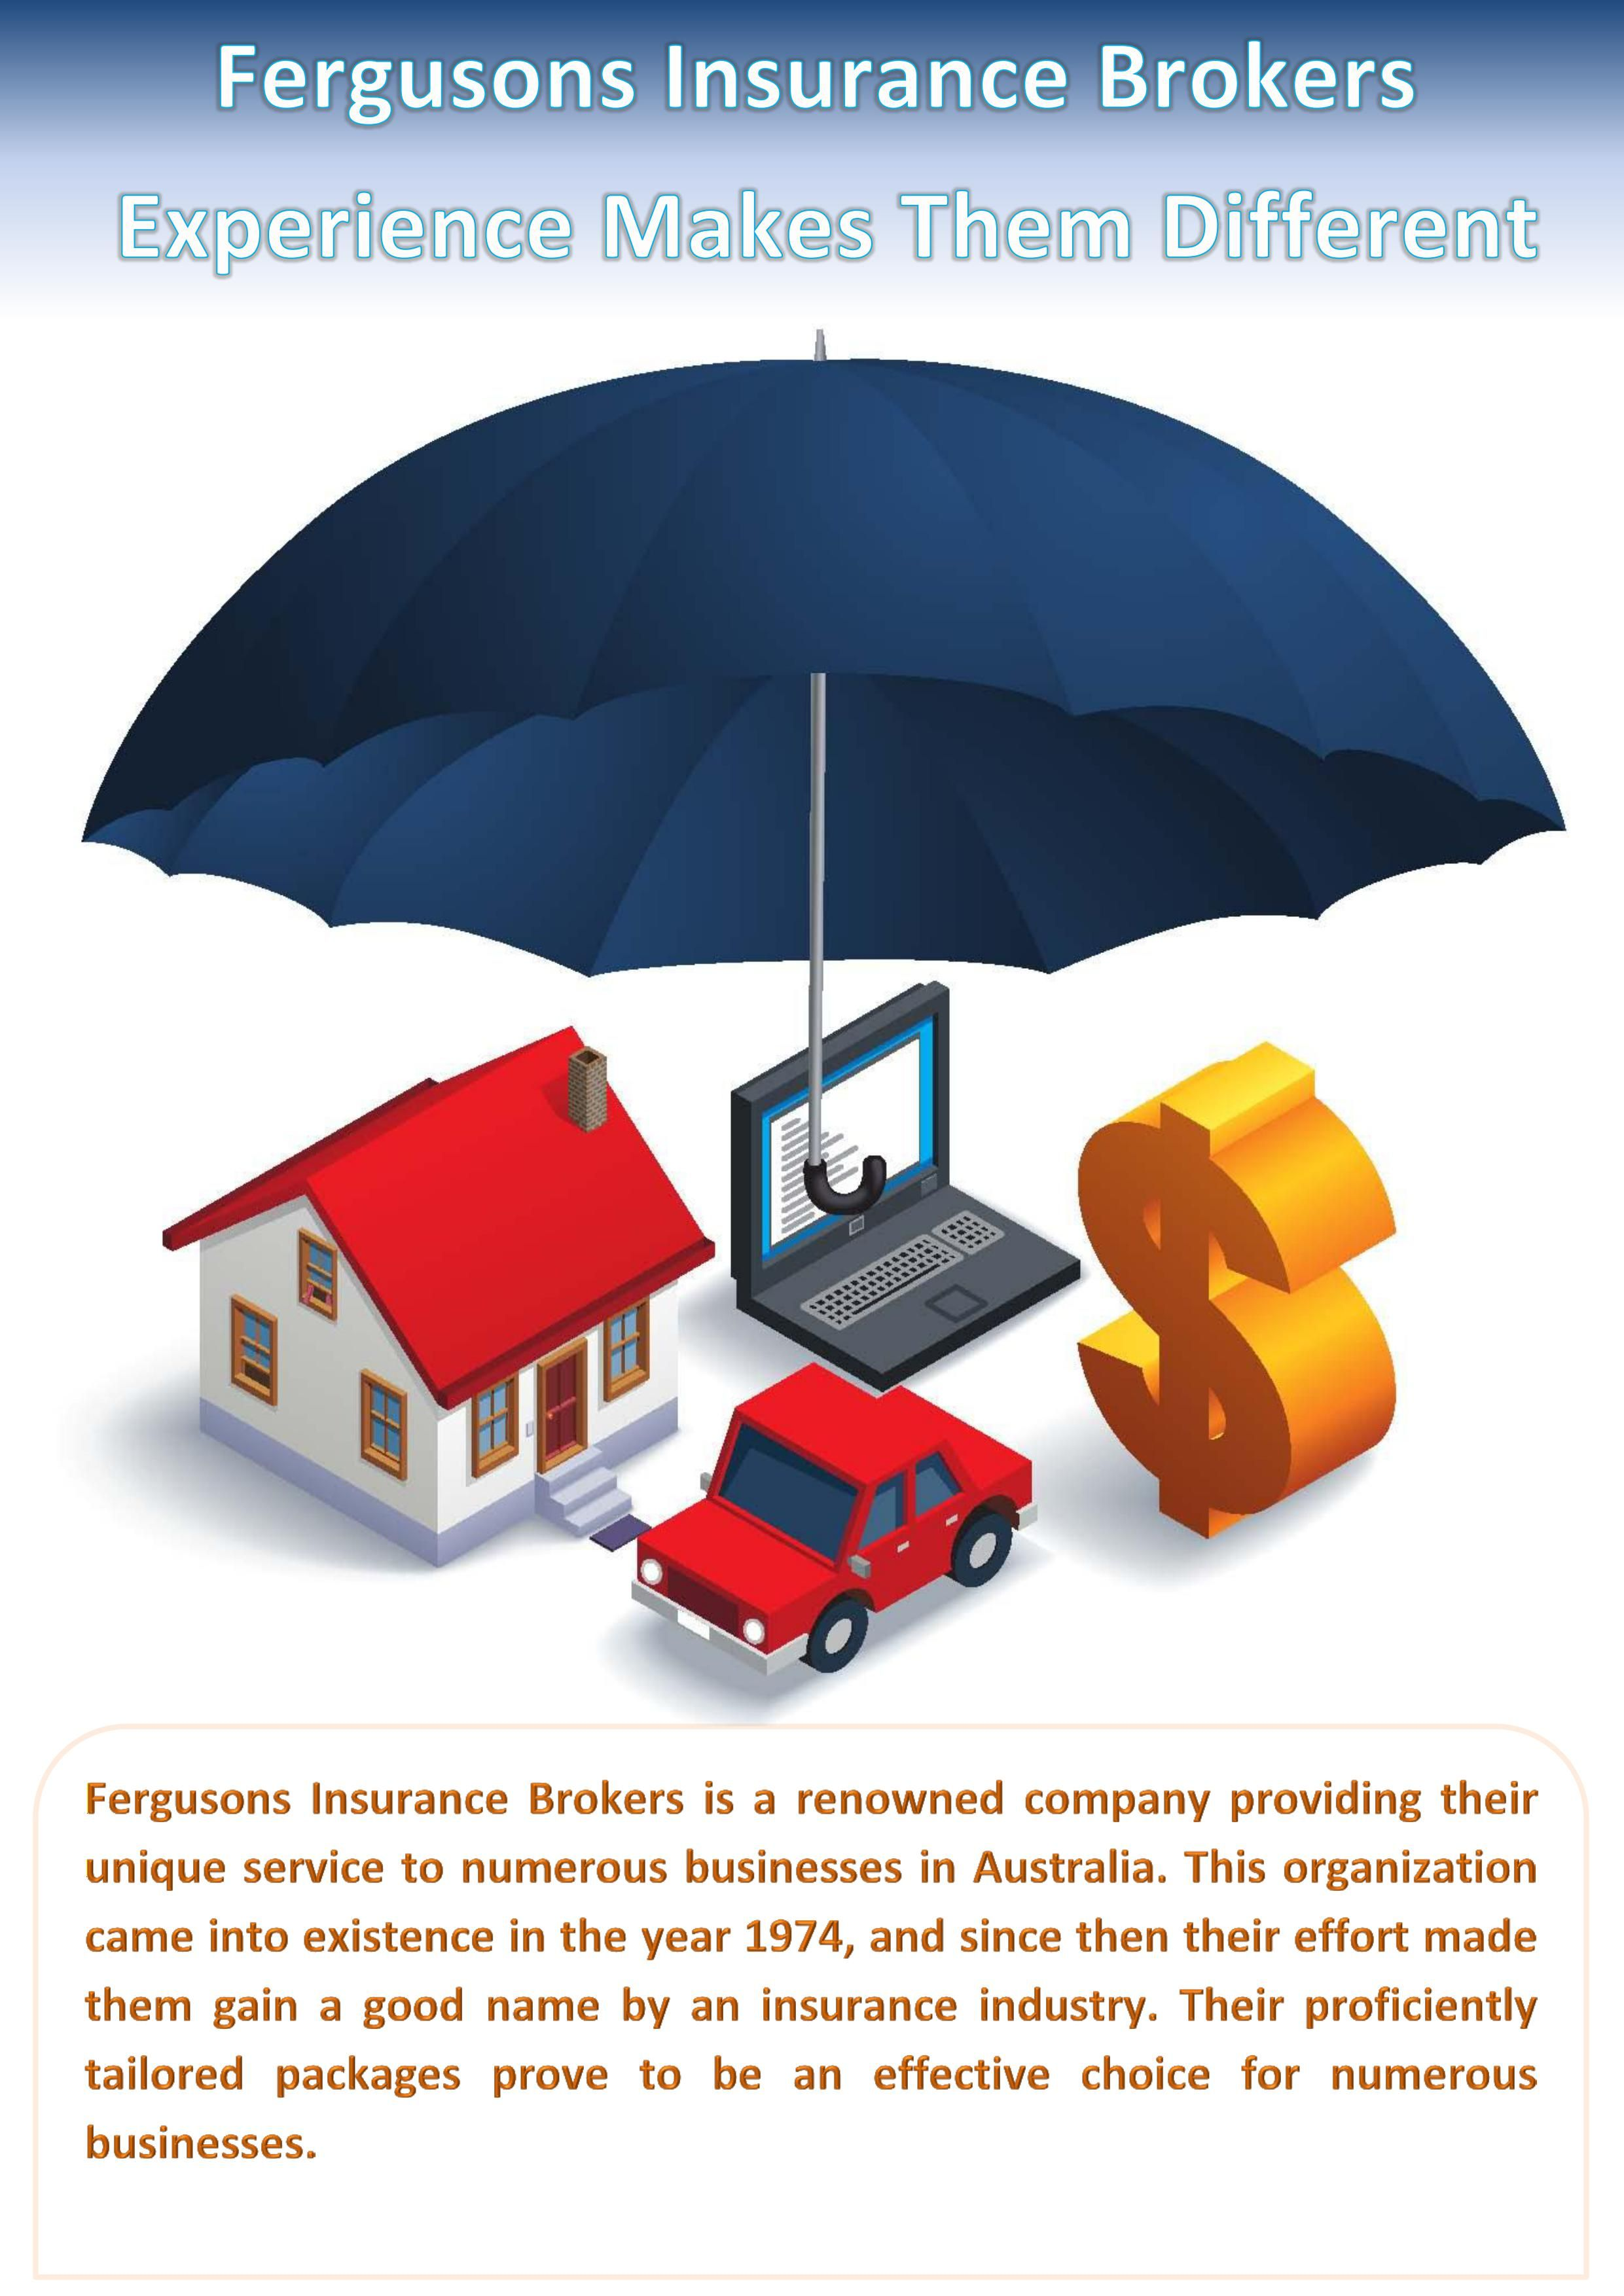 Public Liability And Indemnity Insurance Melbourne Public Liability Insurance Home Auto Insurance Umbrella